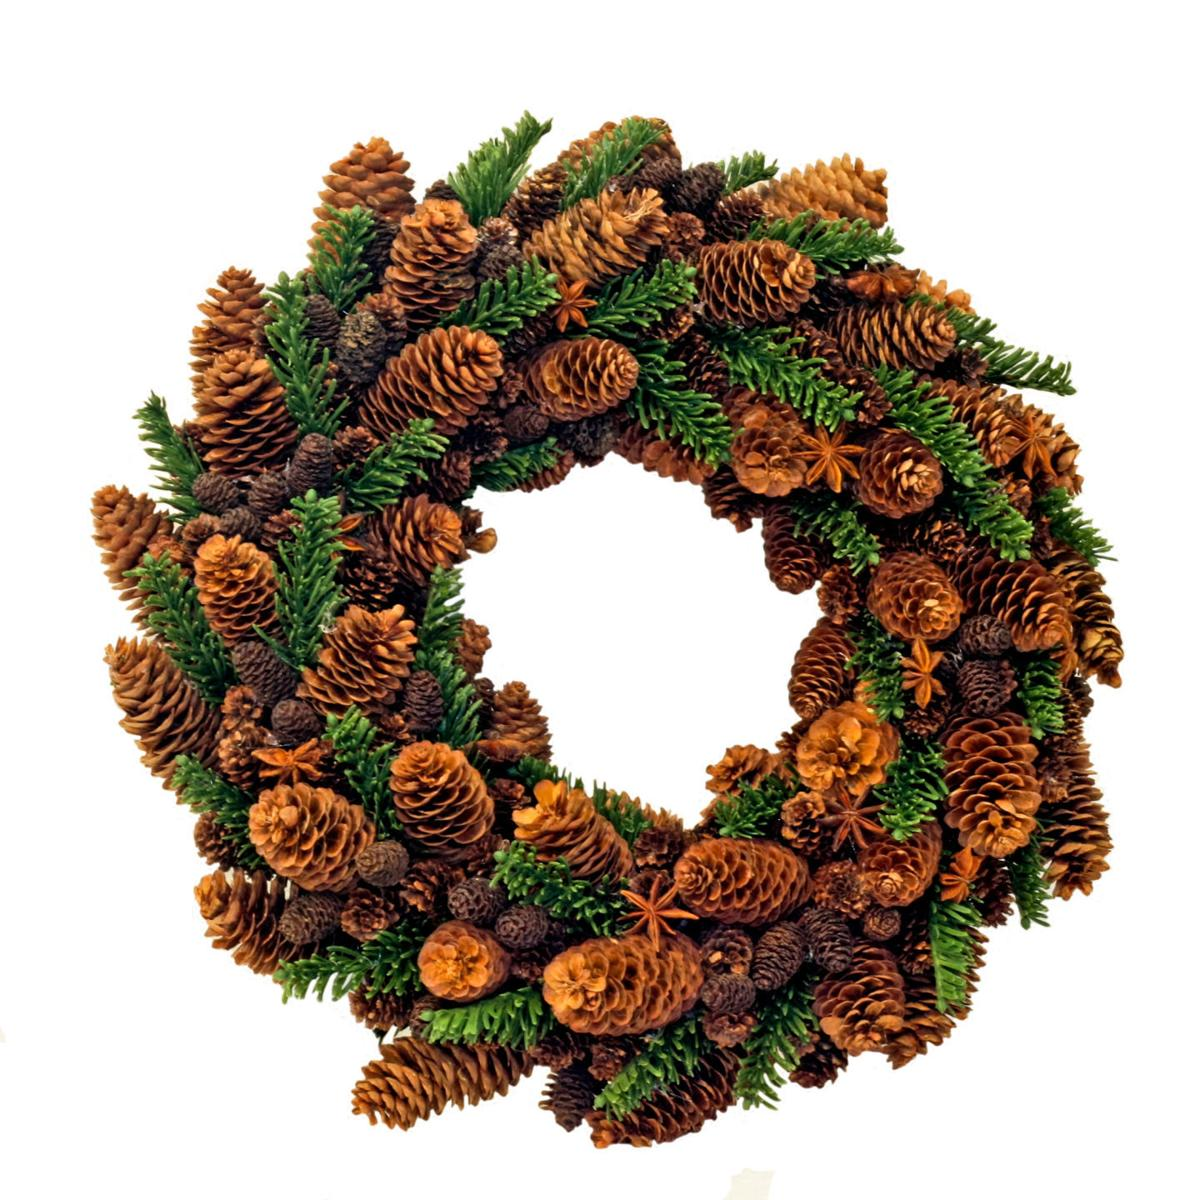 Making a winter wreath | Master Gardener | napavalleyregister.com